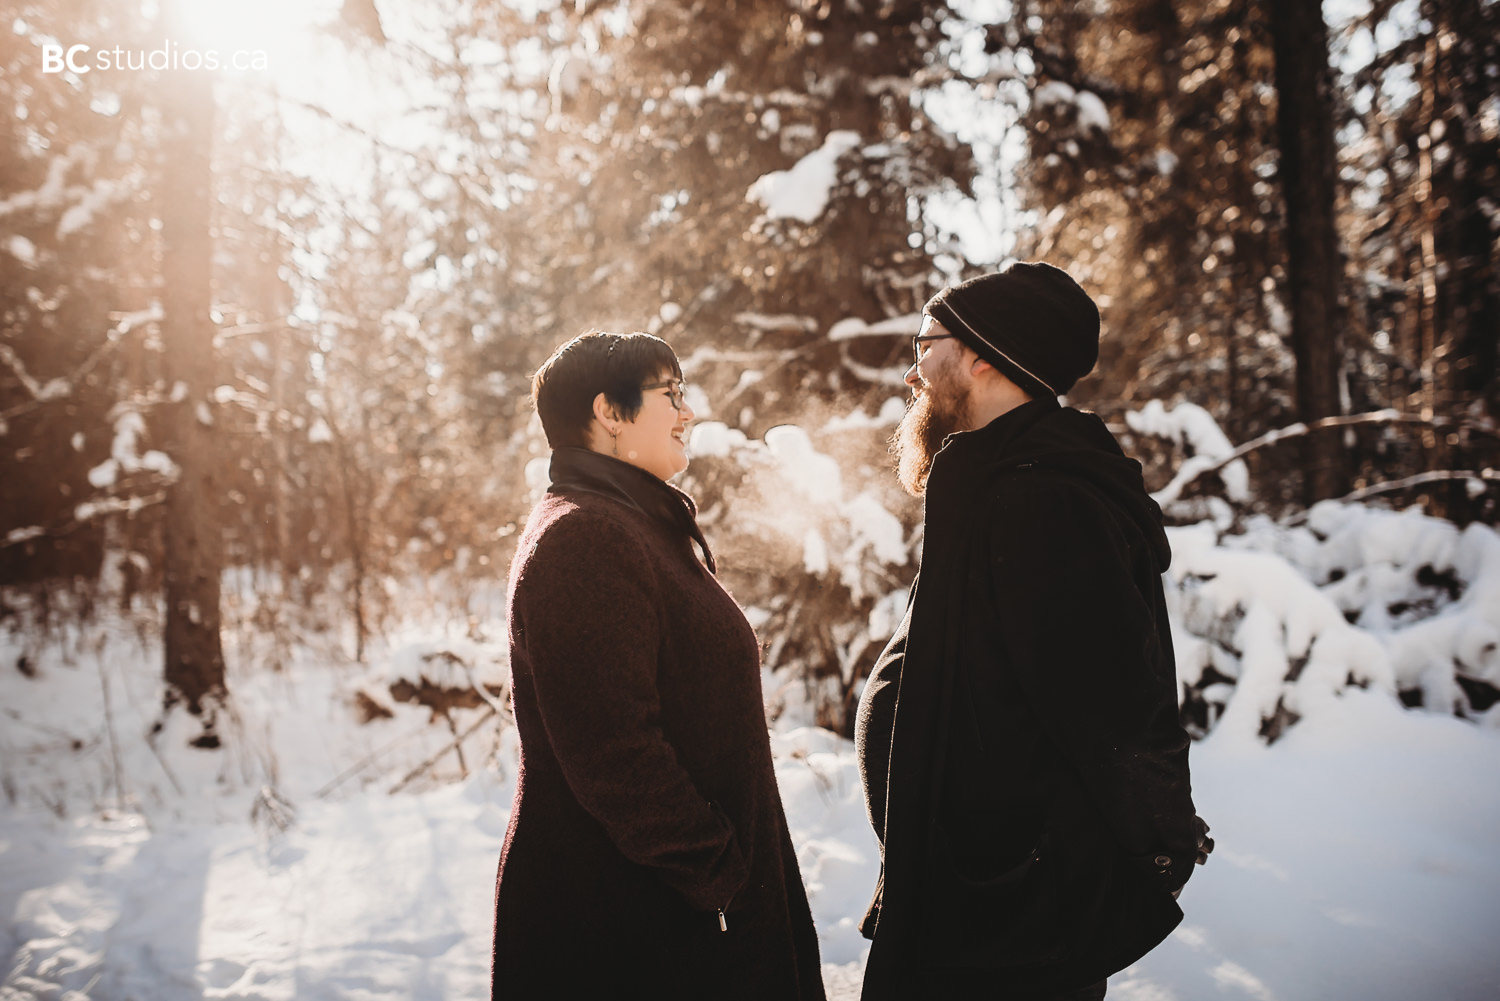 whitemud park engagement couple under sunlight photo